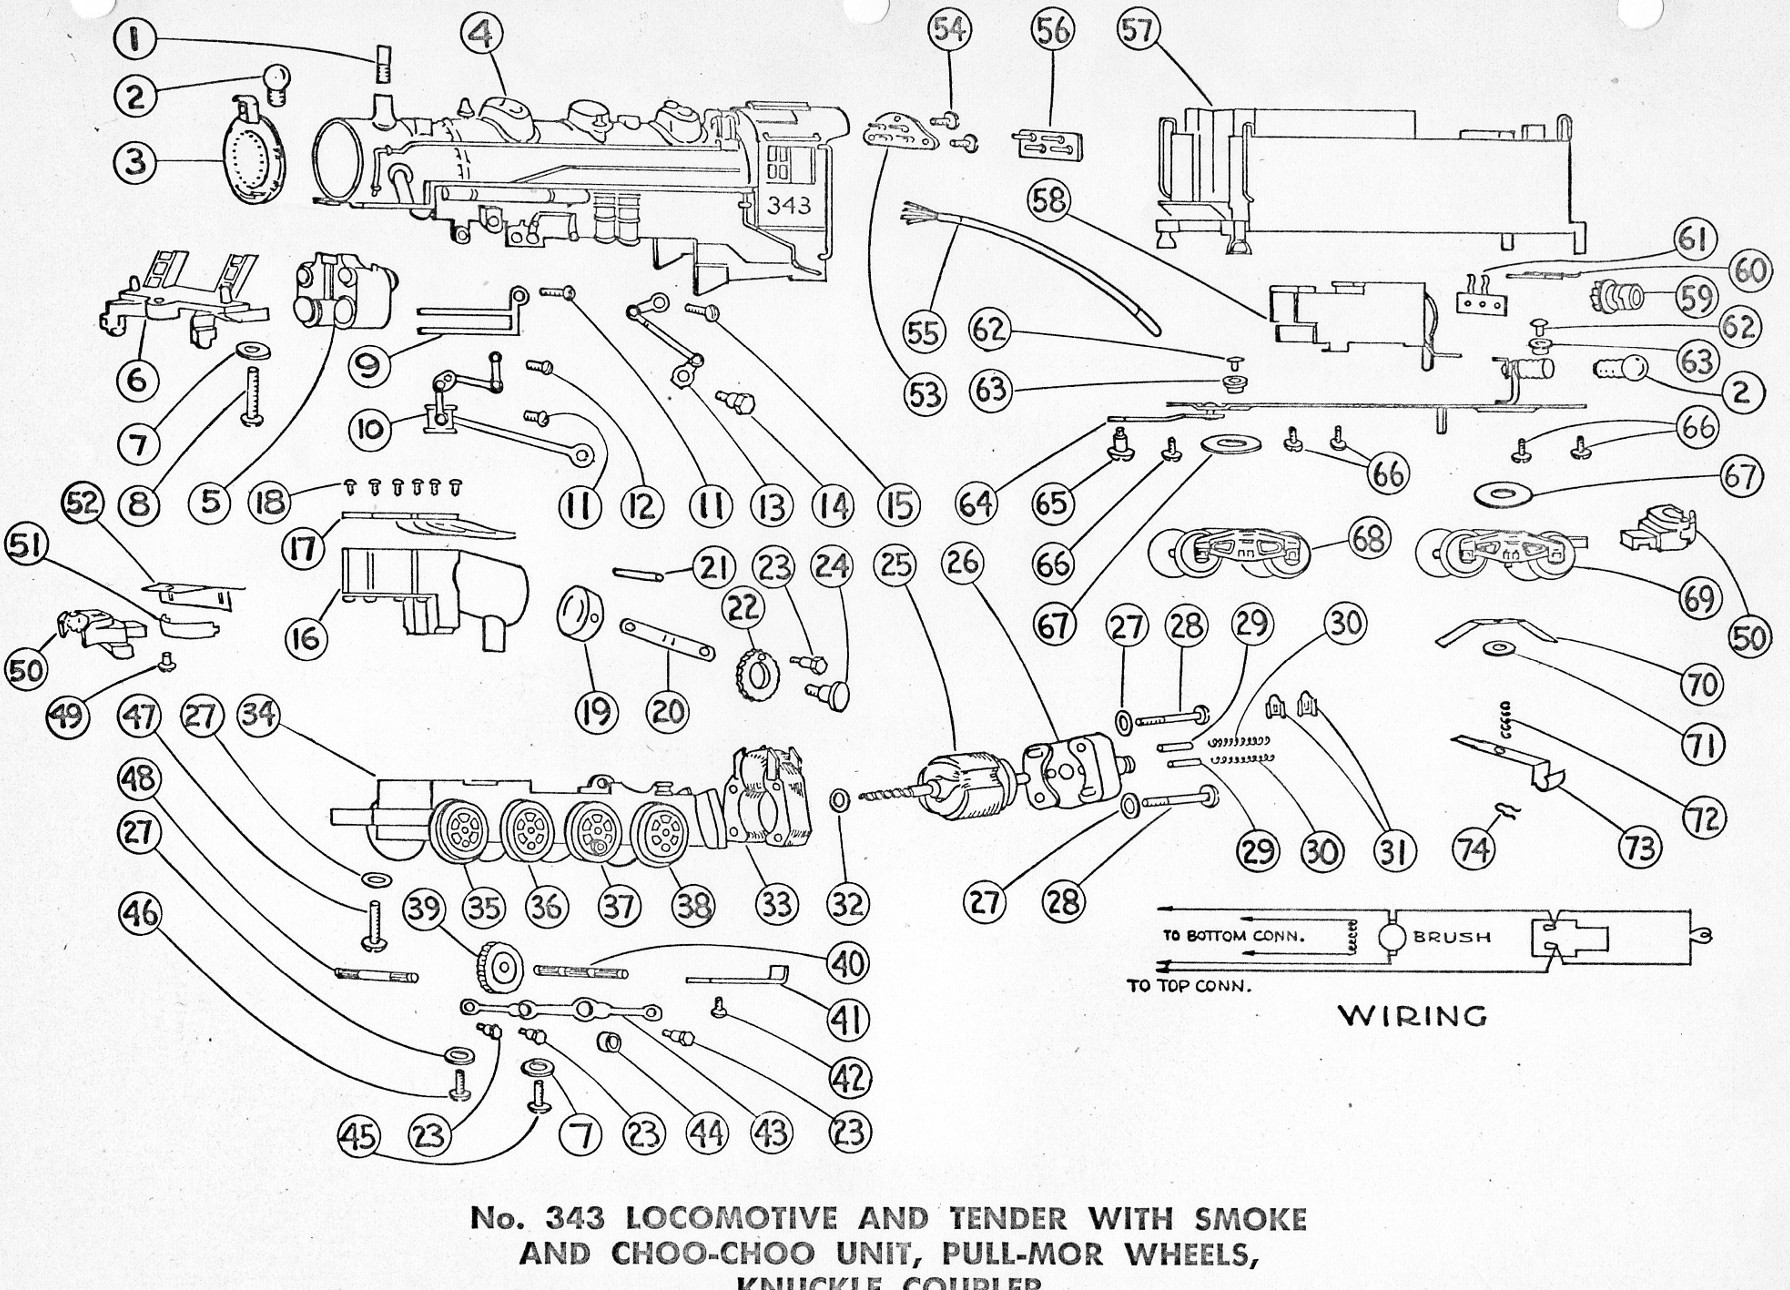 American Flyer Locomotive 343 Parts List Diagram Traindr 1950 Motors Wiring Tender